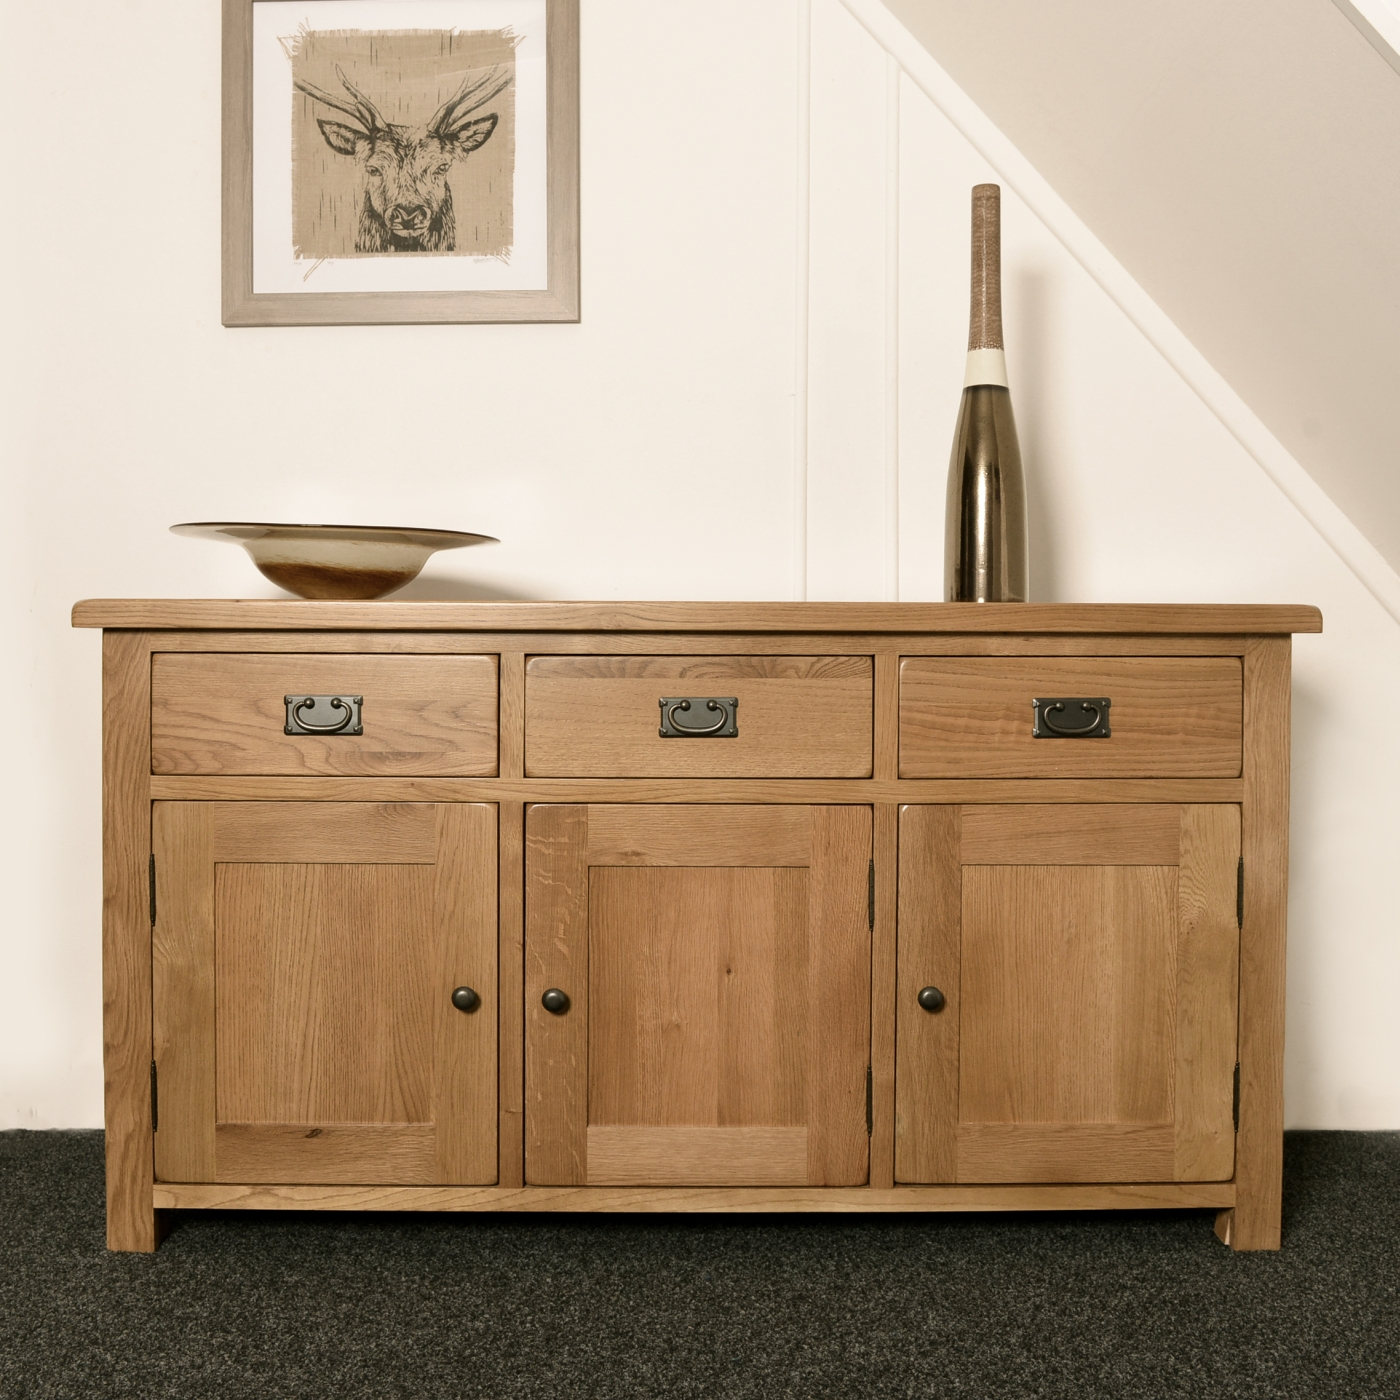 Solid Oak Extra Large Sideboard Dining Living Room Traditional Rustic Furniture